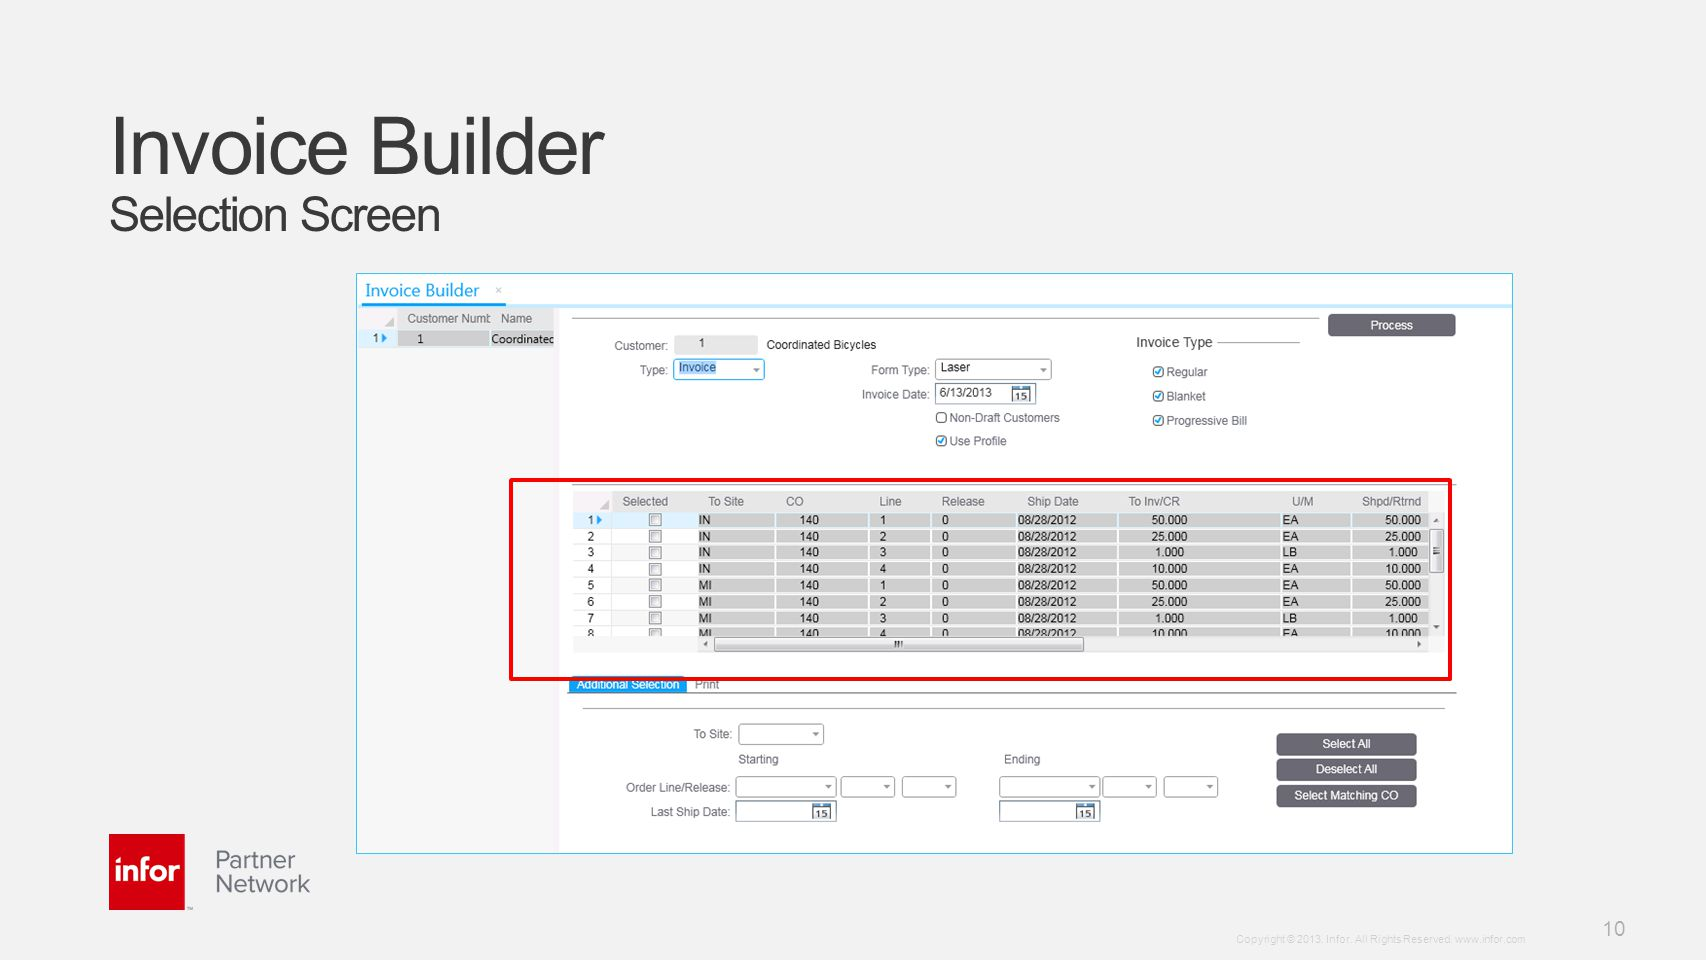 Invoice Builder Selection Screen